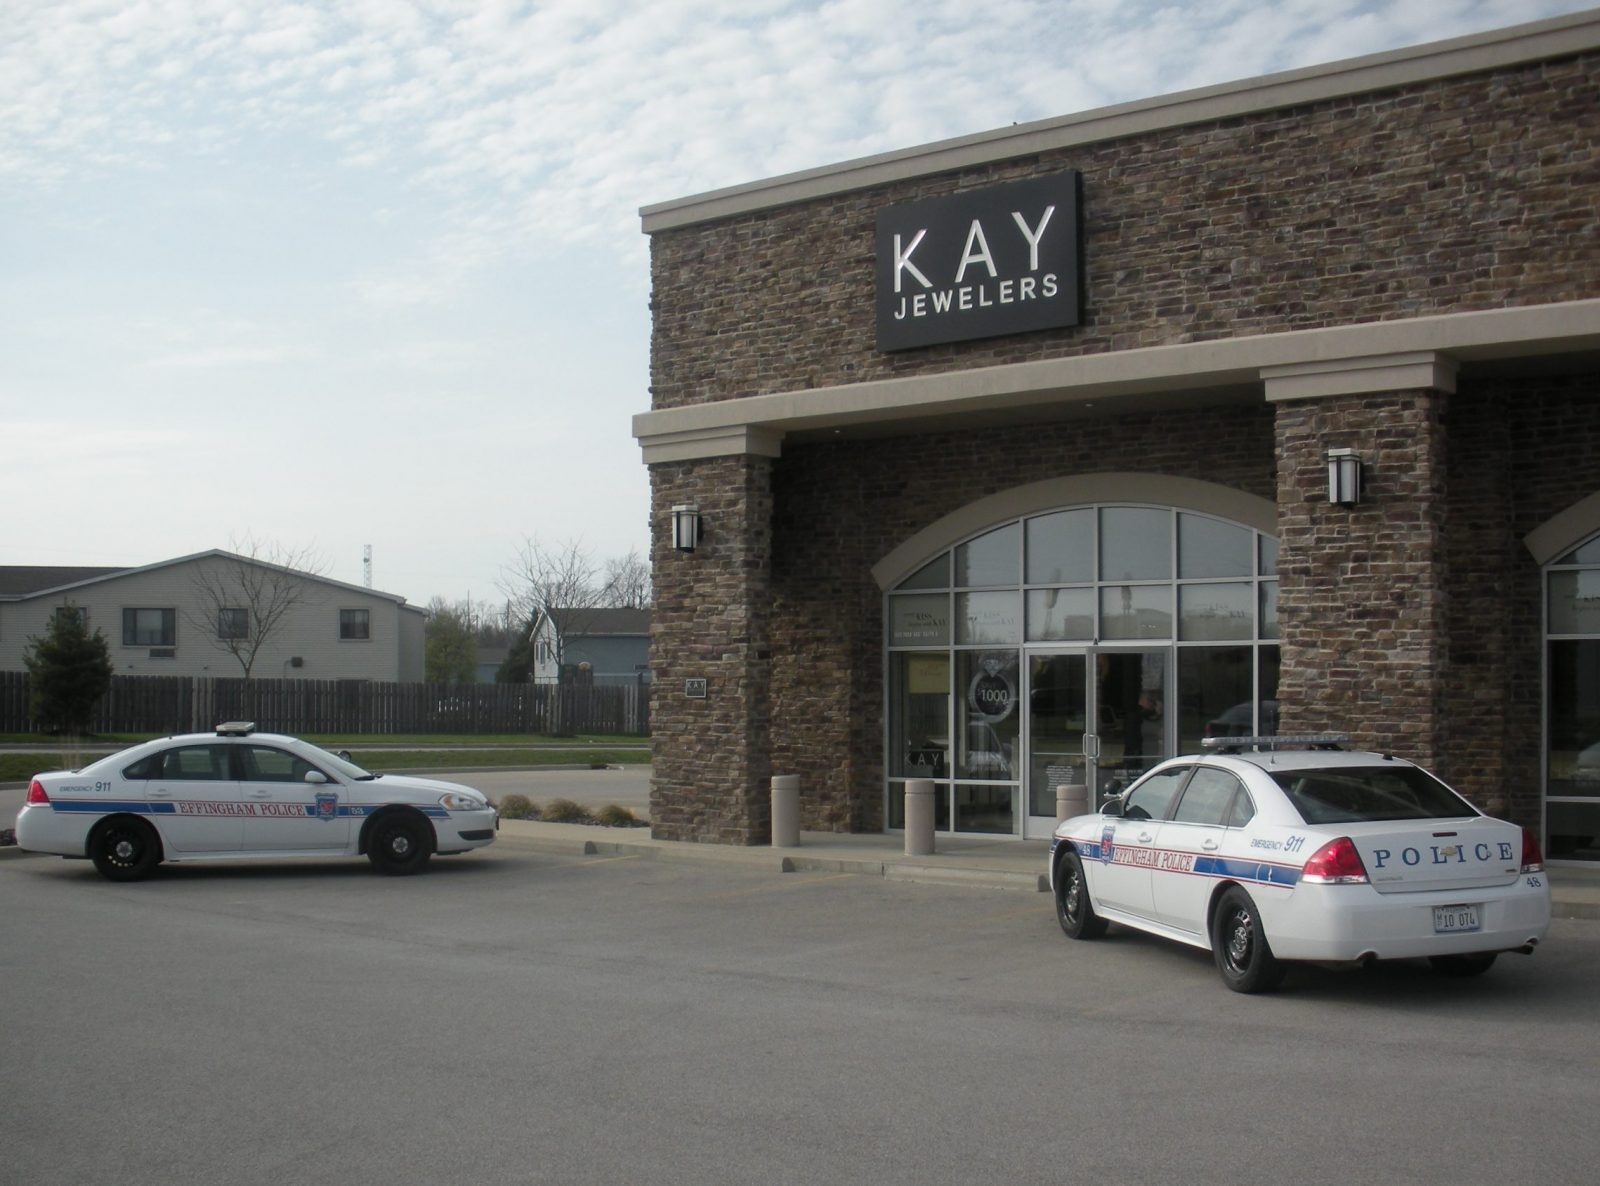 Police at Kay Jewelers investigating an alleged robbery Sunday evening.